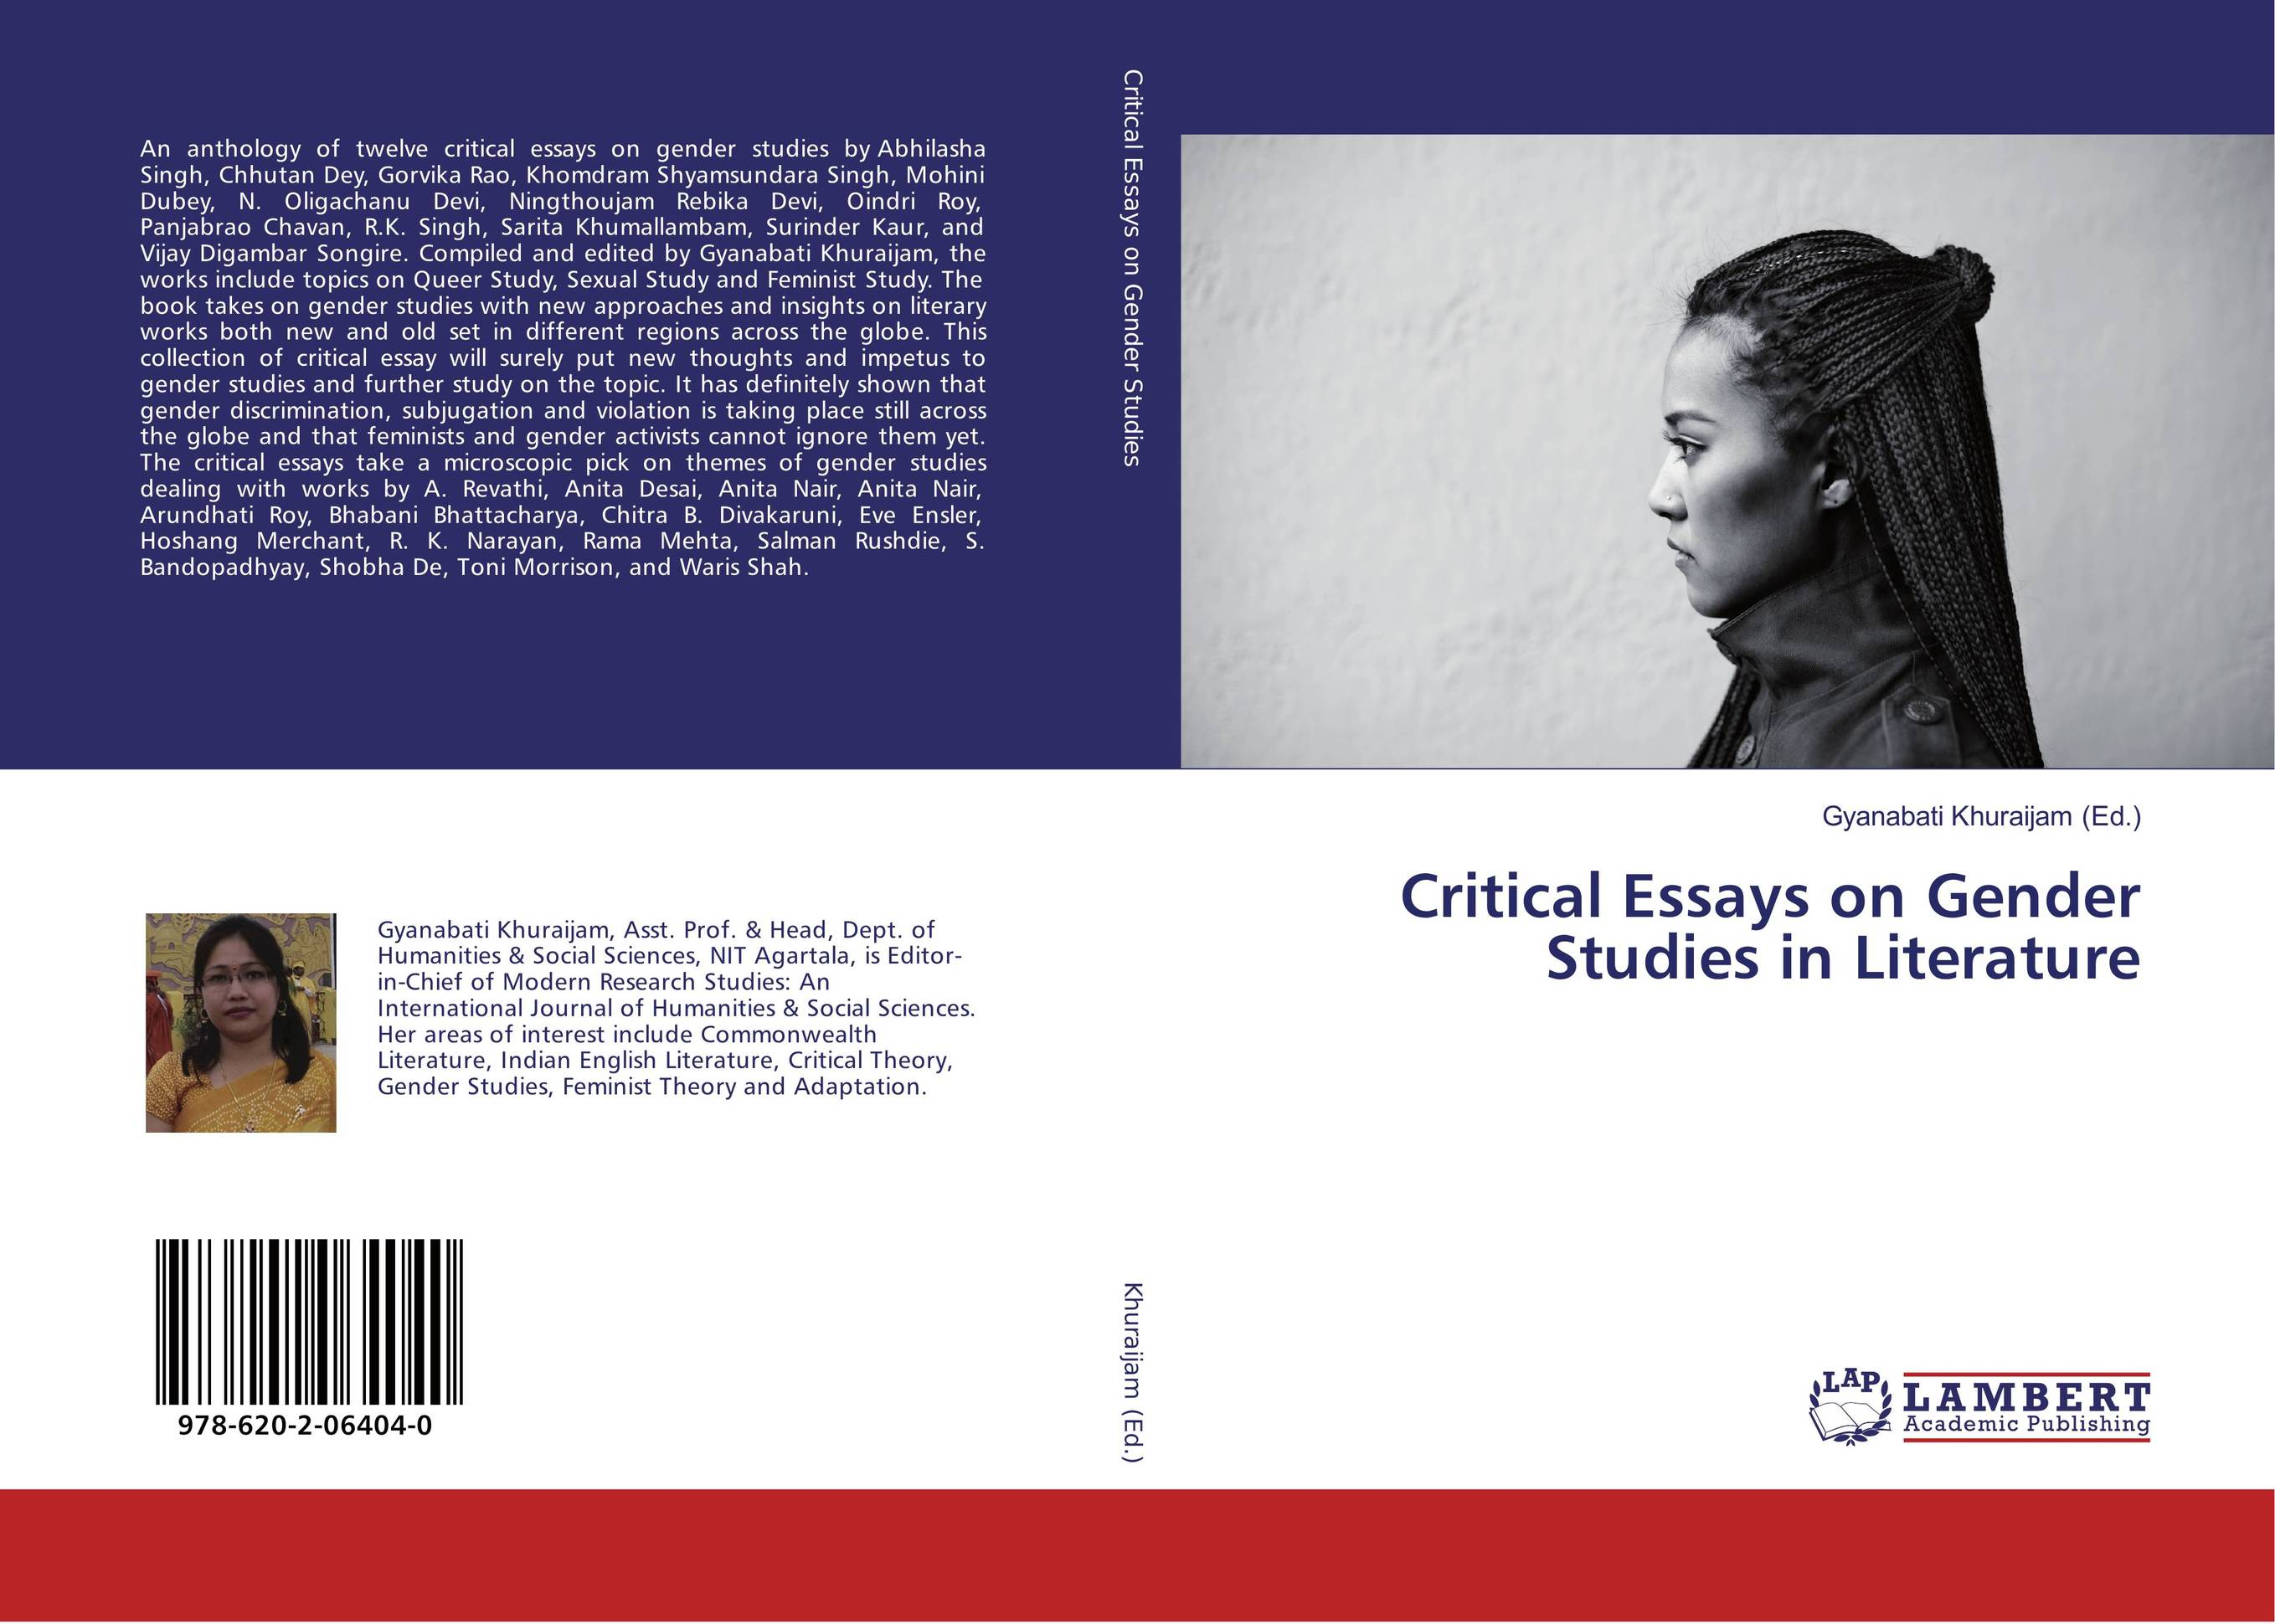 an anthology of essays By chelsea lee an anthology is a collection of works, organized around a central theme, that has been assembled by an editor or publisher one type of anthology is often called a collected works or complete works, in which all.